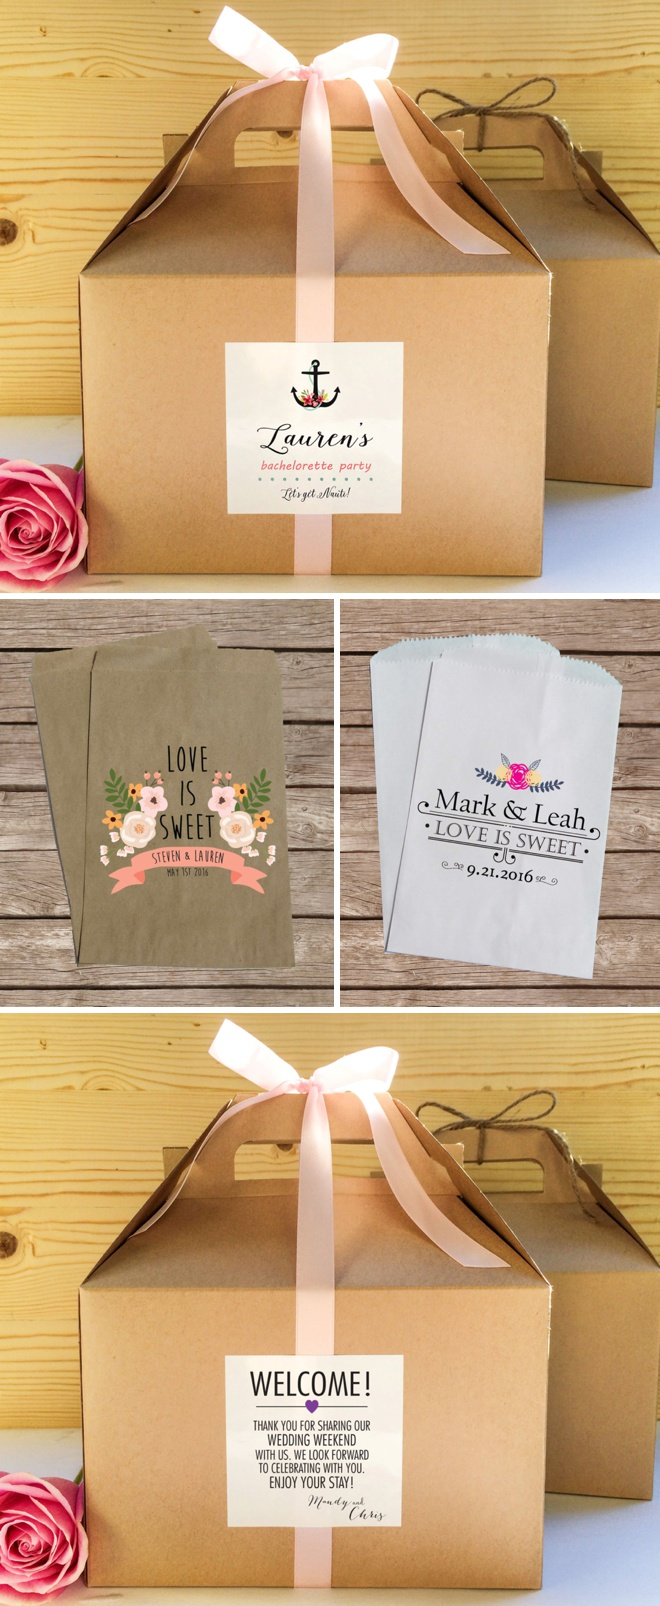 I love these custom favor bags and gable boxes by Creative Party Design on Etsy!